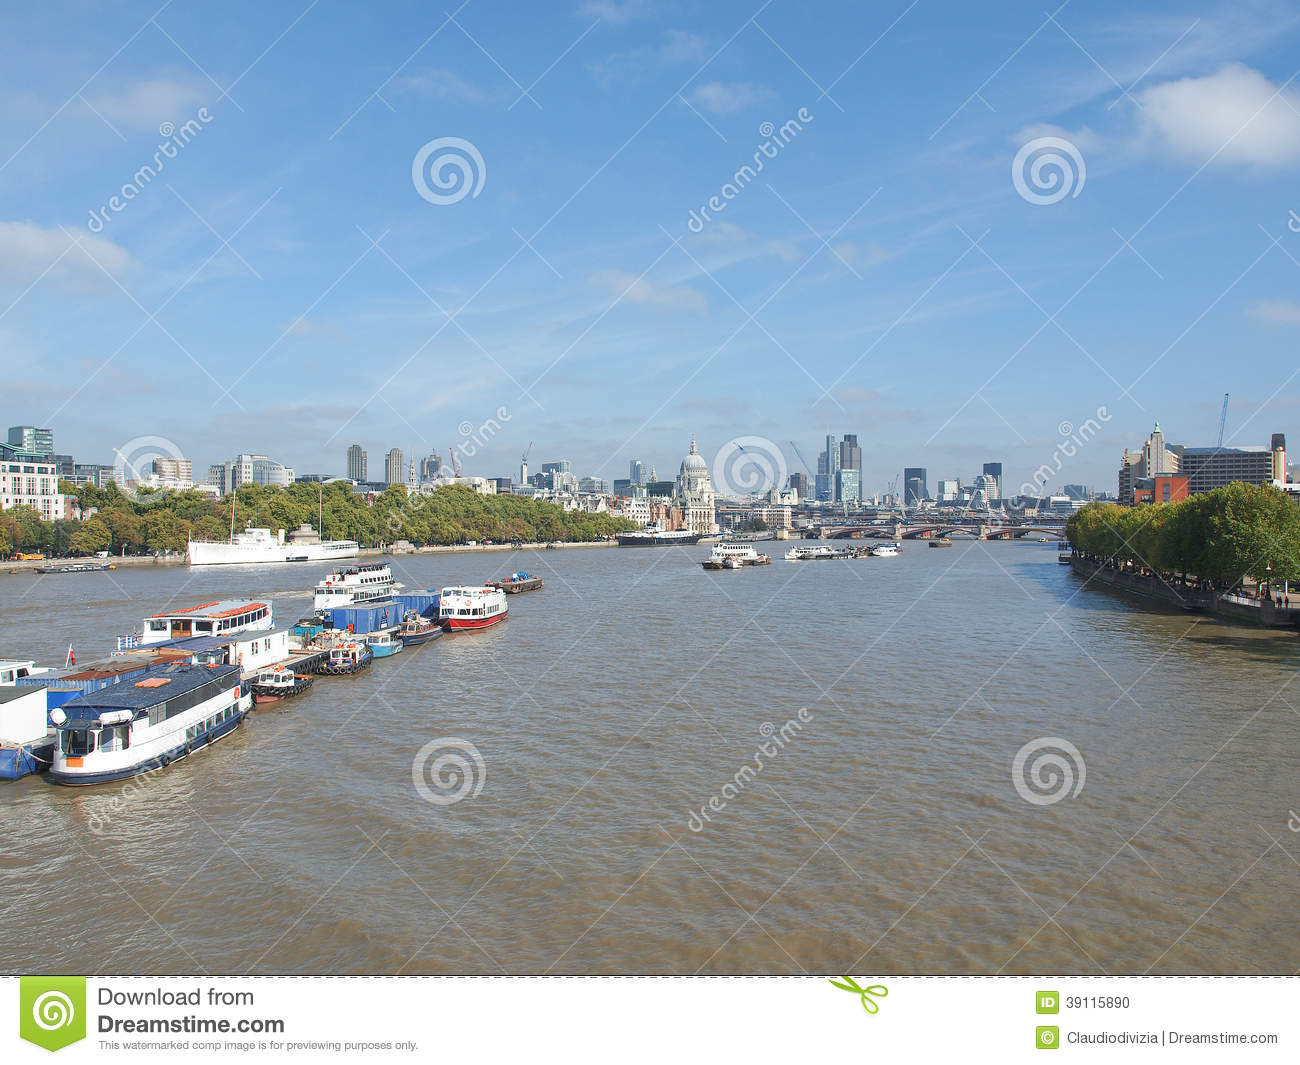 Rivier Theems in Londen